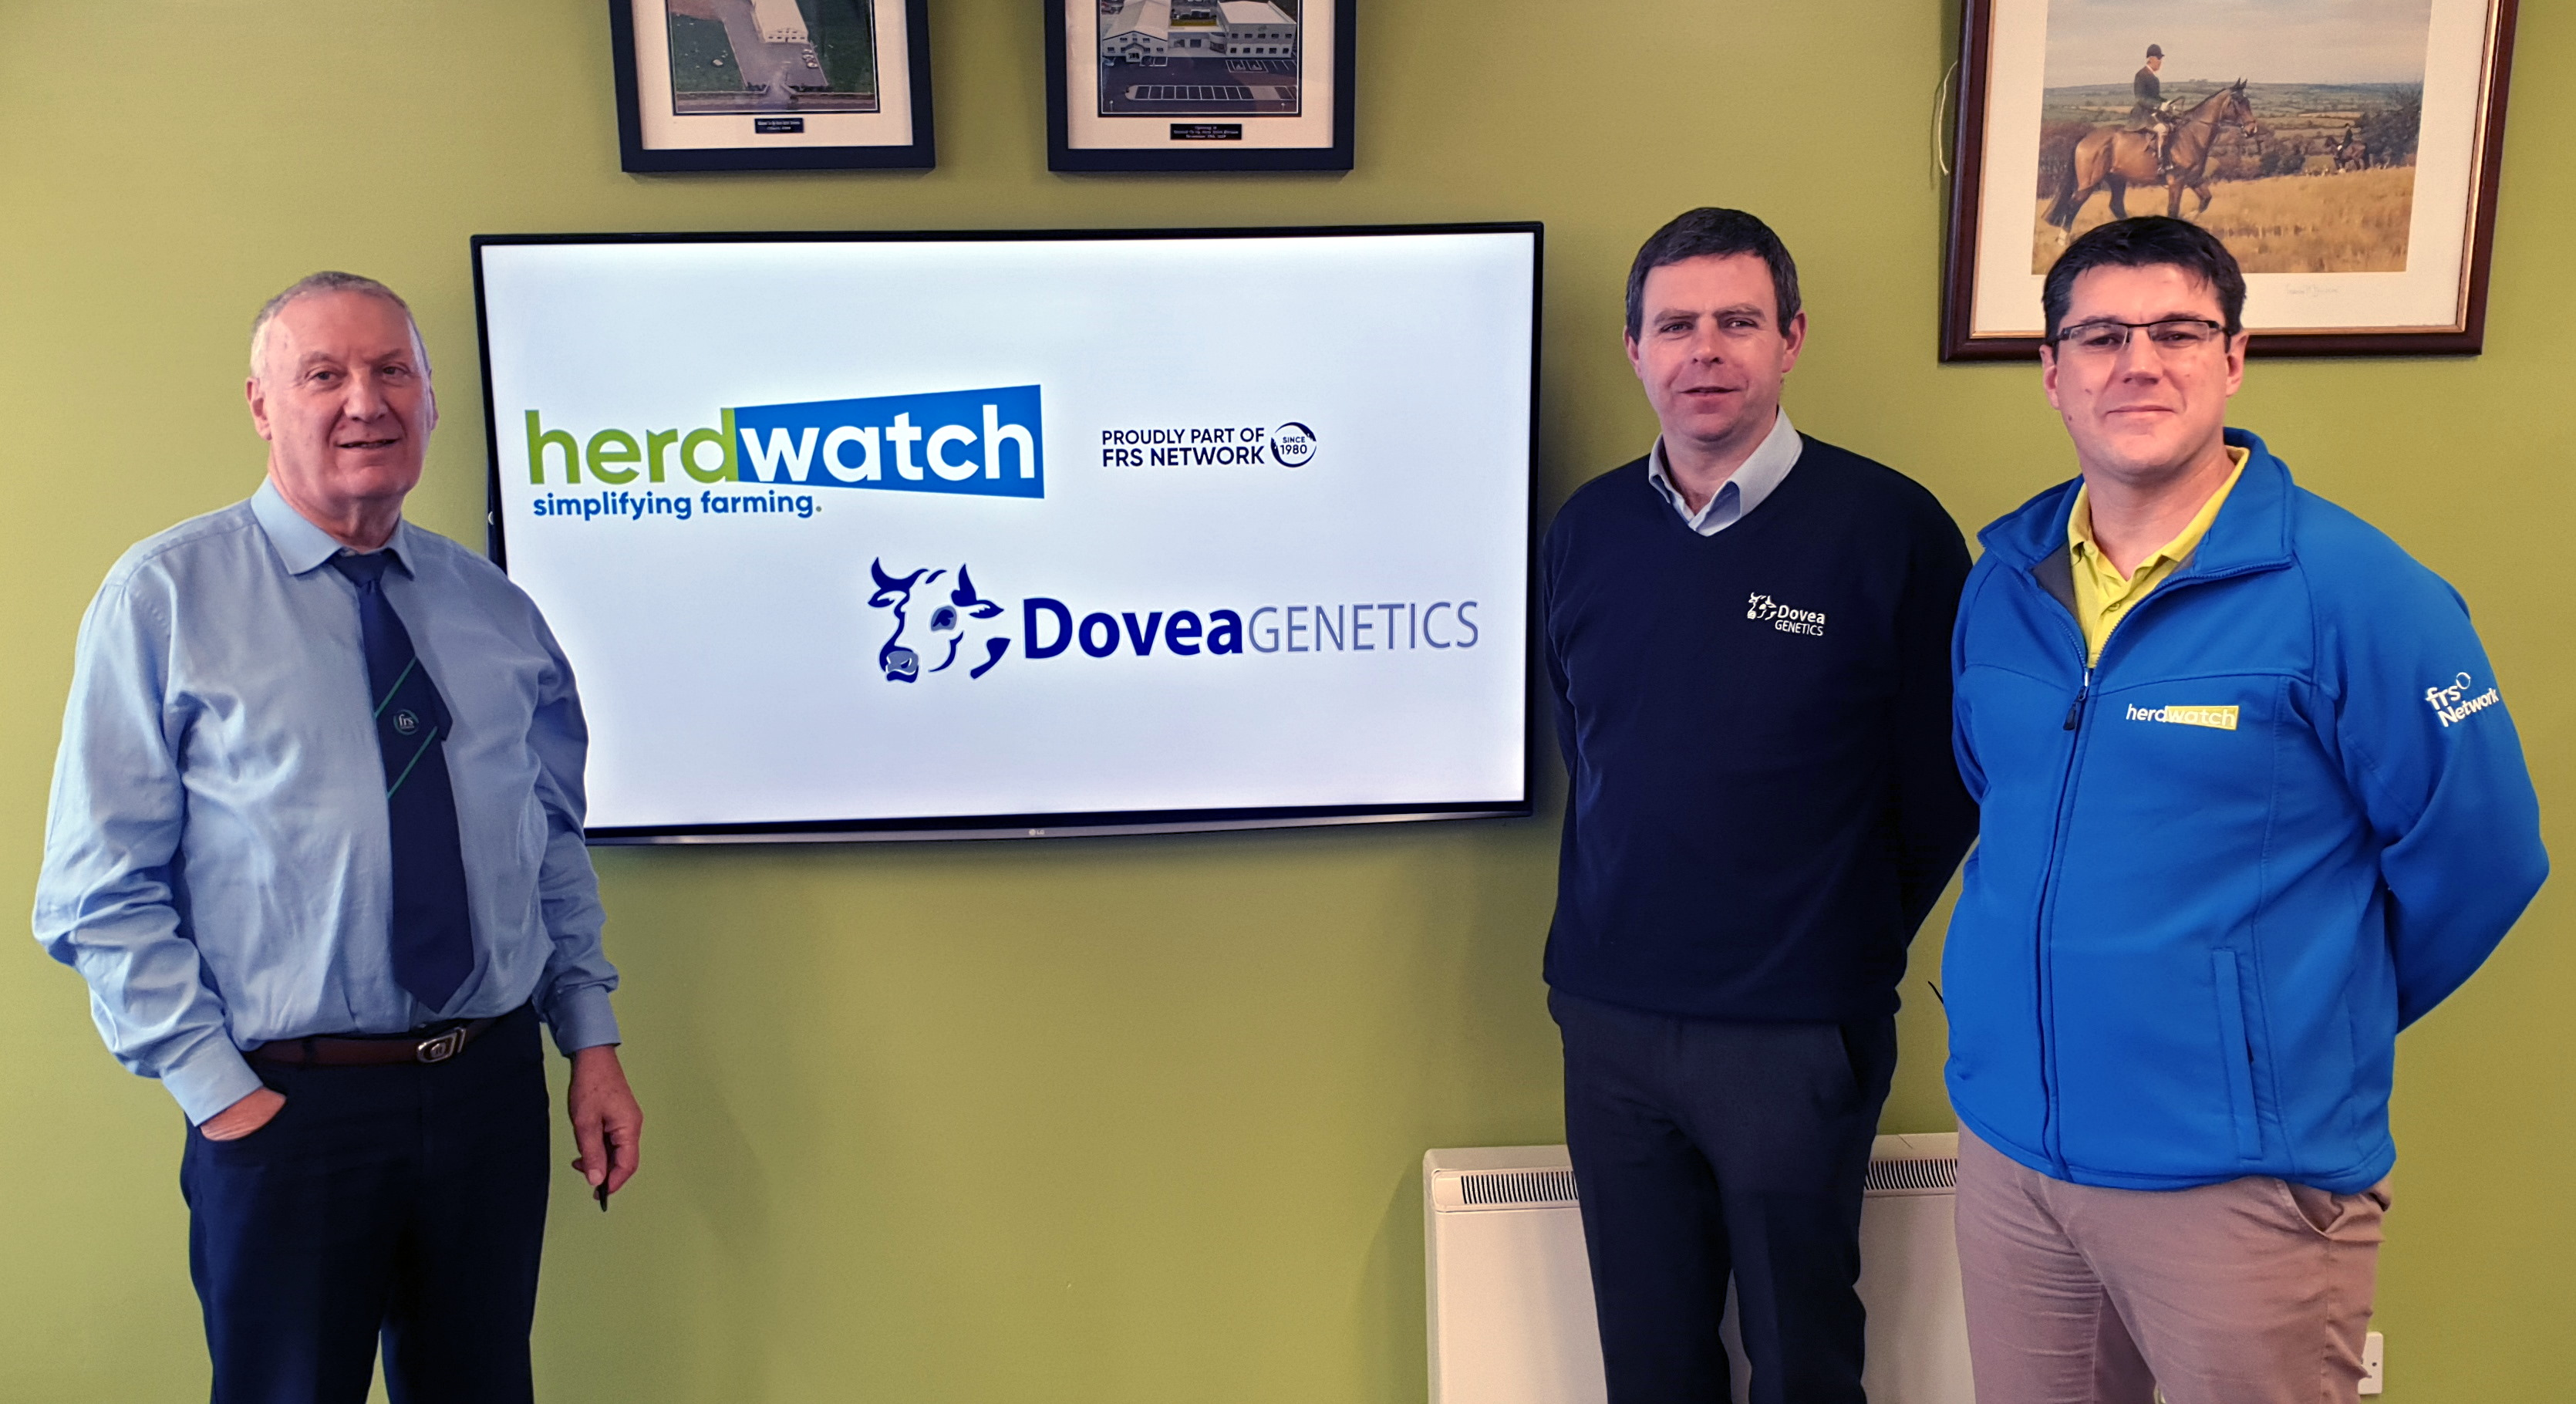 FRS Network CEO Peter Byrne, Dovea General Manager Dr Ger Ryan and Herdwatch CEO Fabien Peyaud